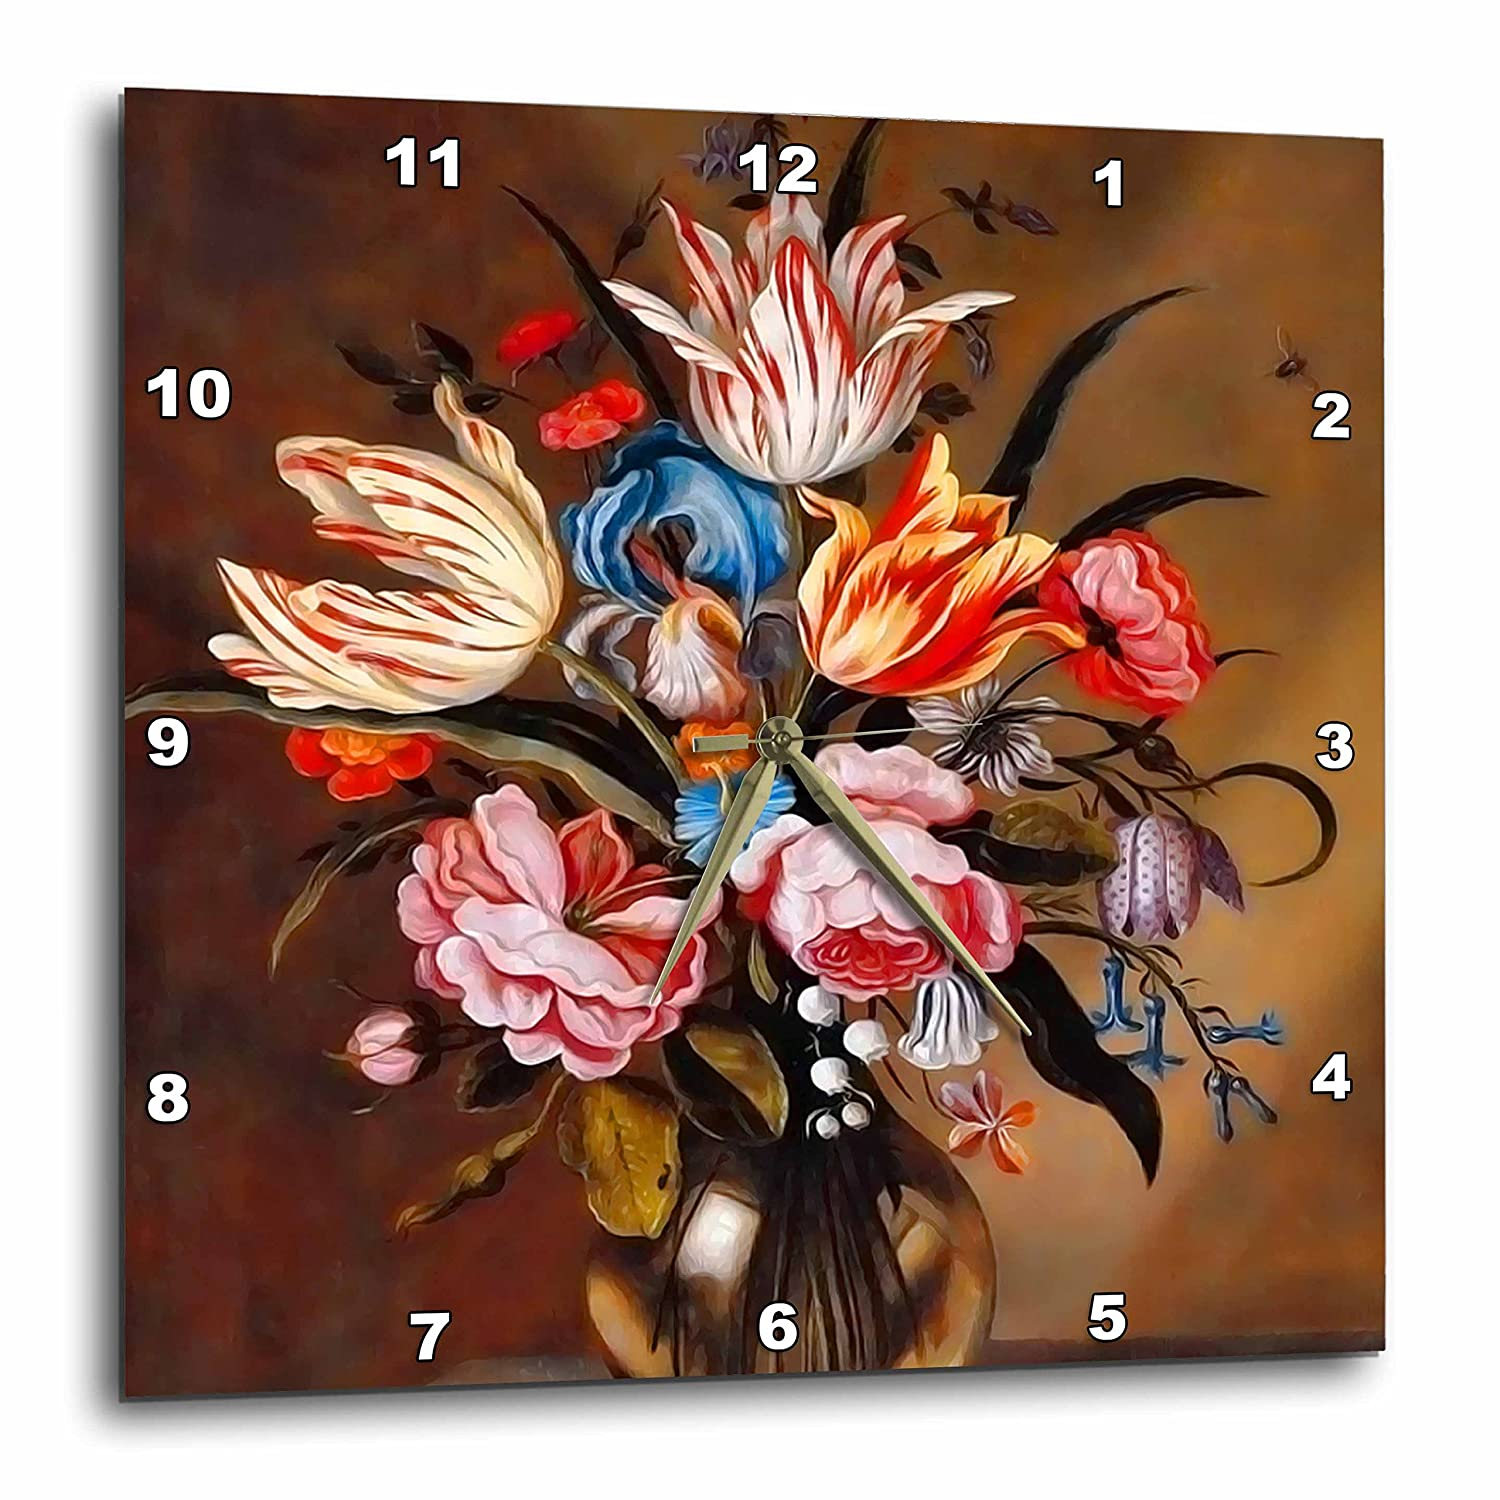 15 by 15-Inch 3dRose DPP/_79449/_3 Vintage Flowers in A Vase by Dutch Artist Abraham Bosschaert from 1632-Wall Clock